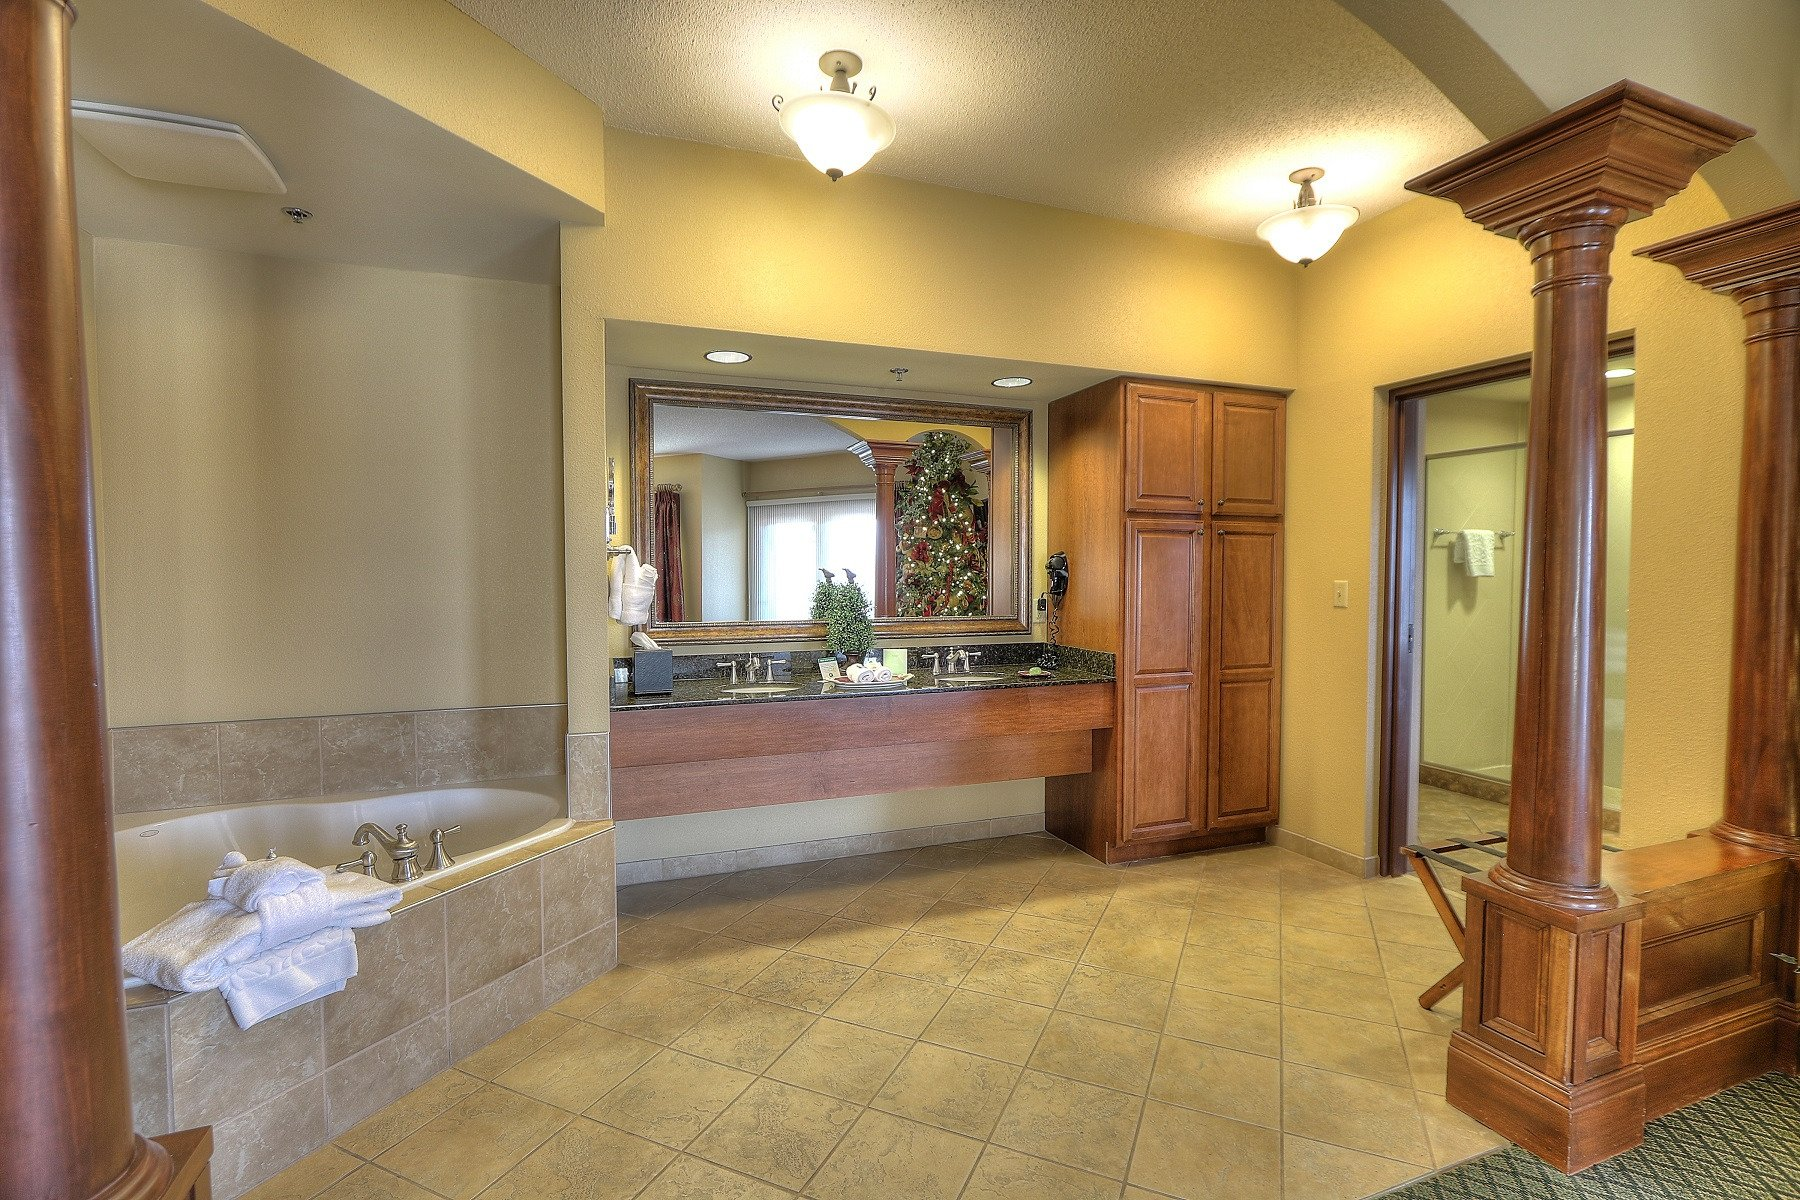 Hotels With 2 Bedroom Suites In Pigeon Forge Tn Onvacations. 2 Bedroom Suite Hotels In Pigeon Forge Tn   Scandlecandle com